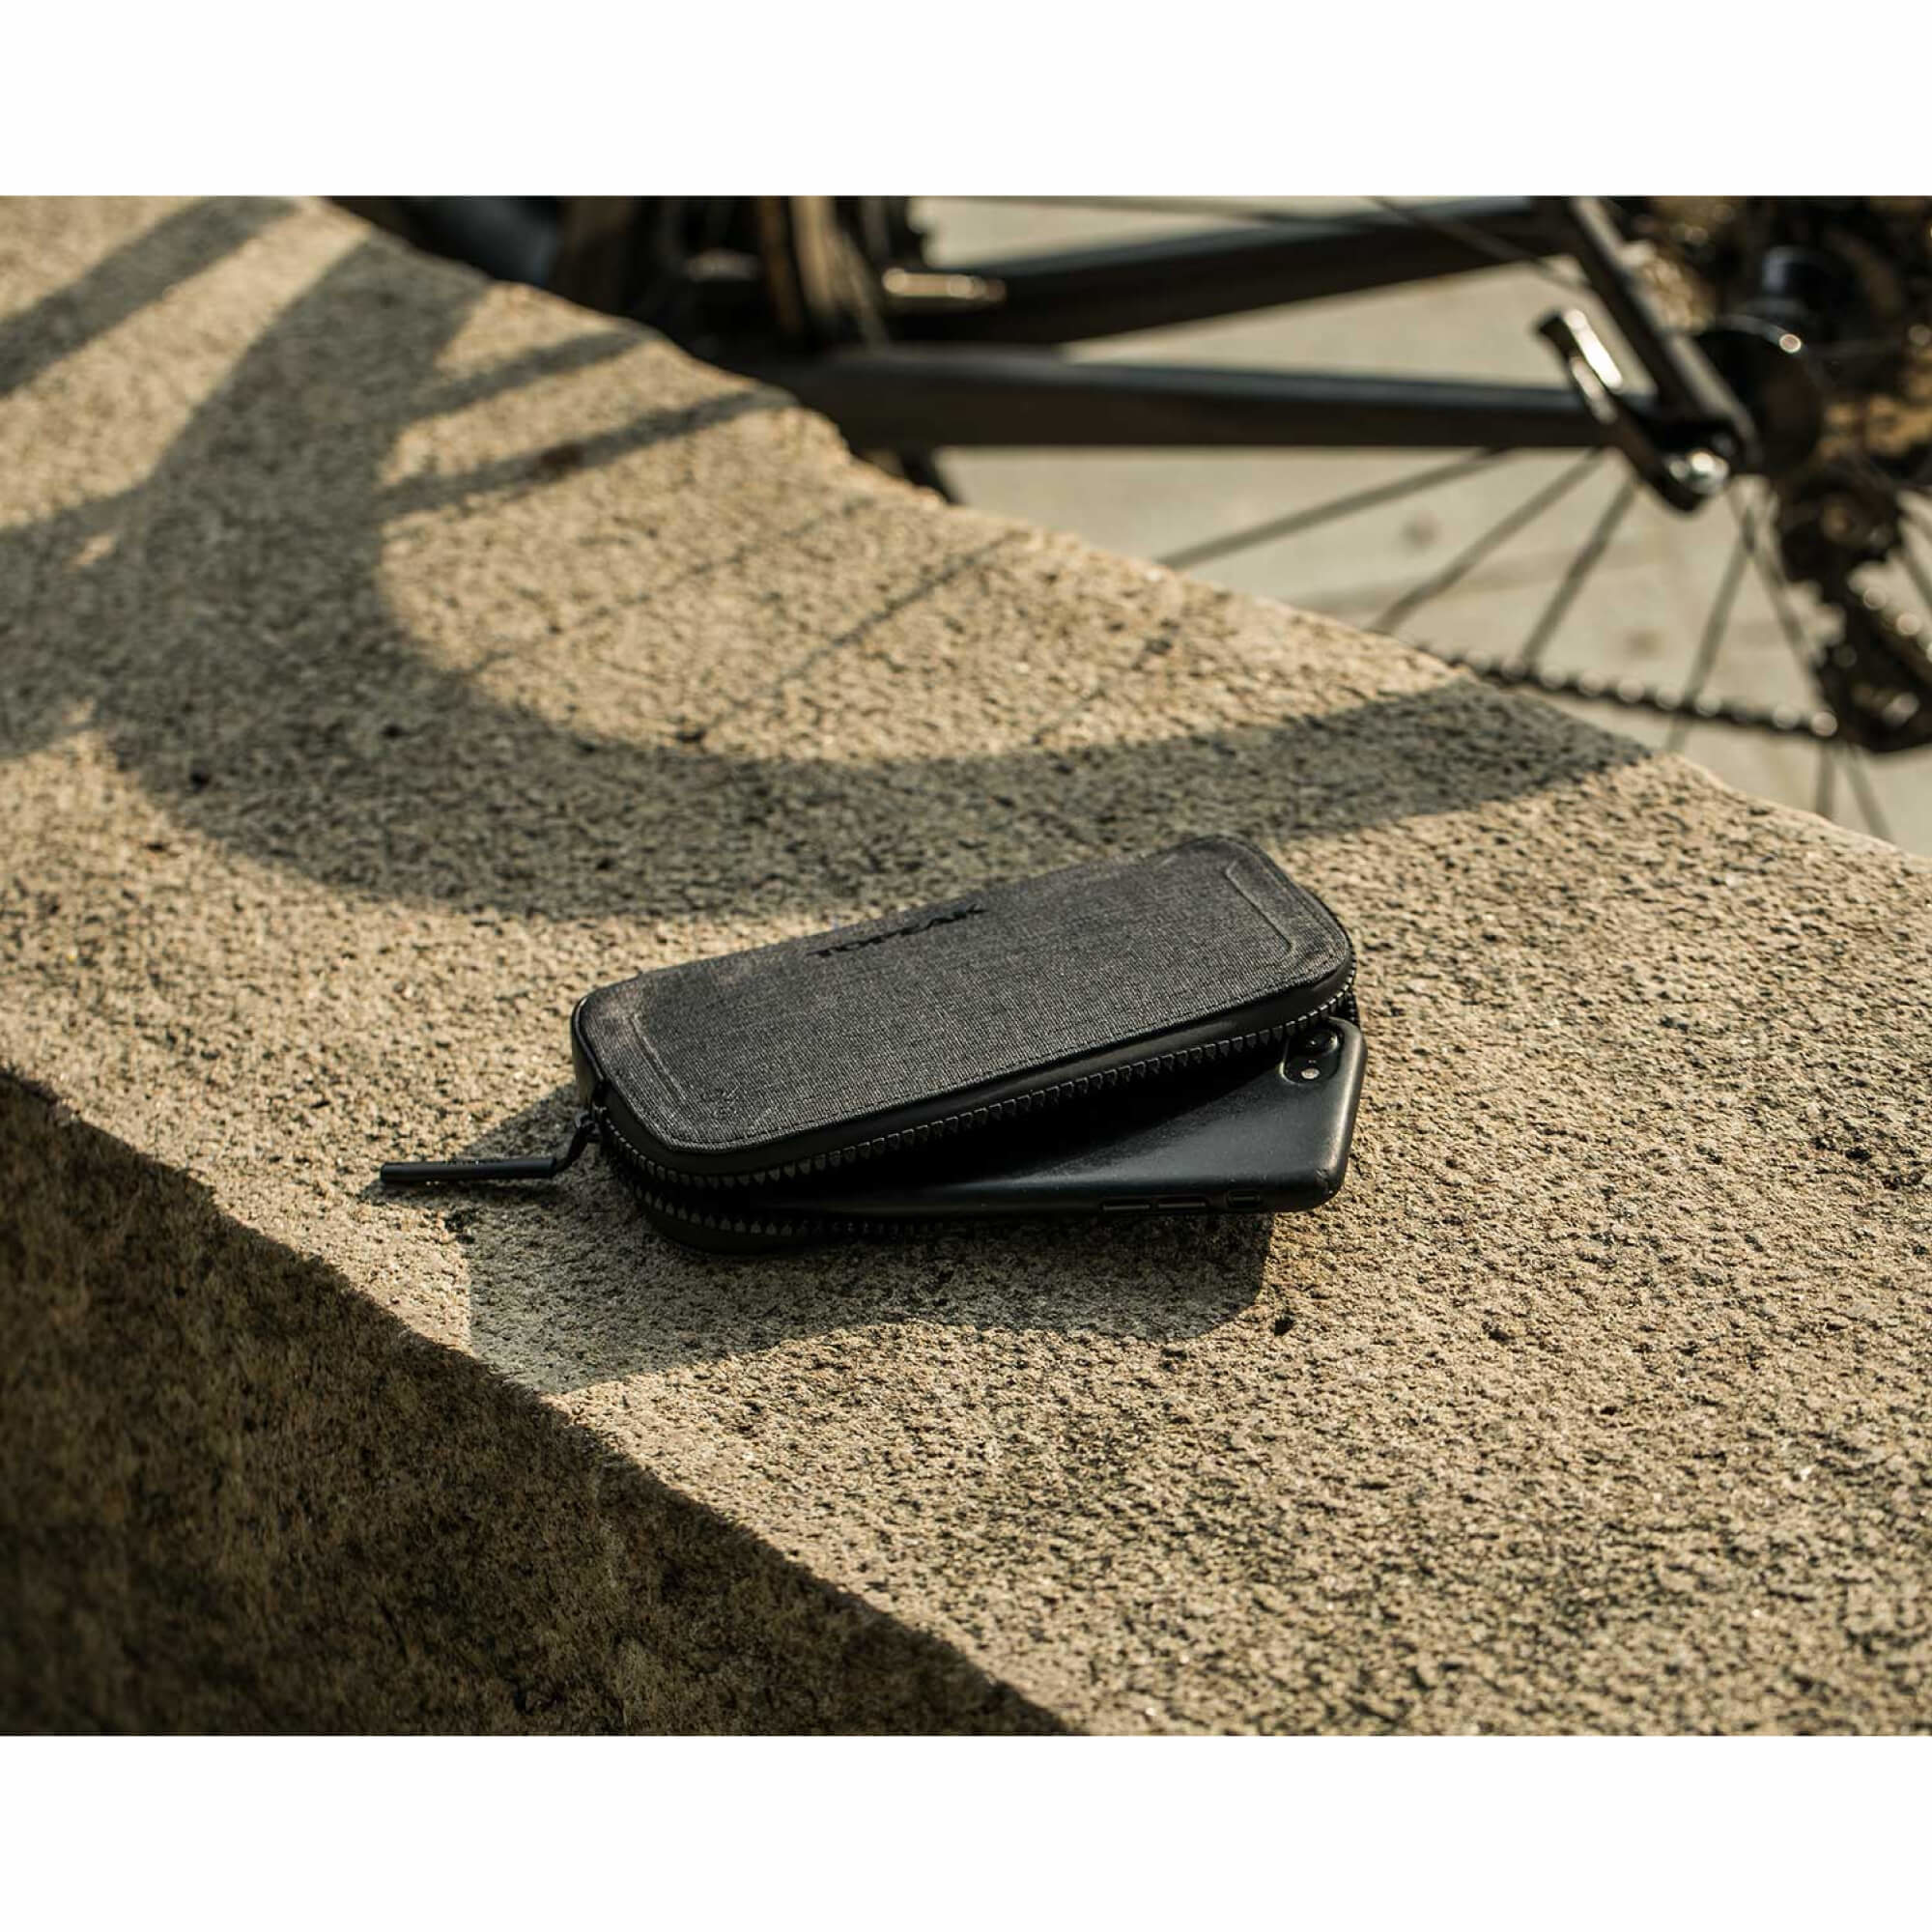 "Cycling Wallet 4.7"", Black-7"